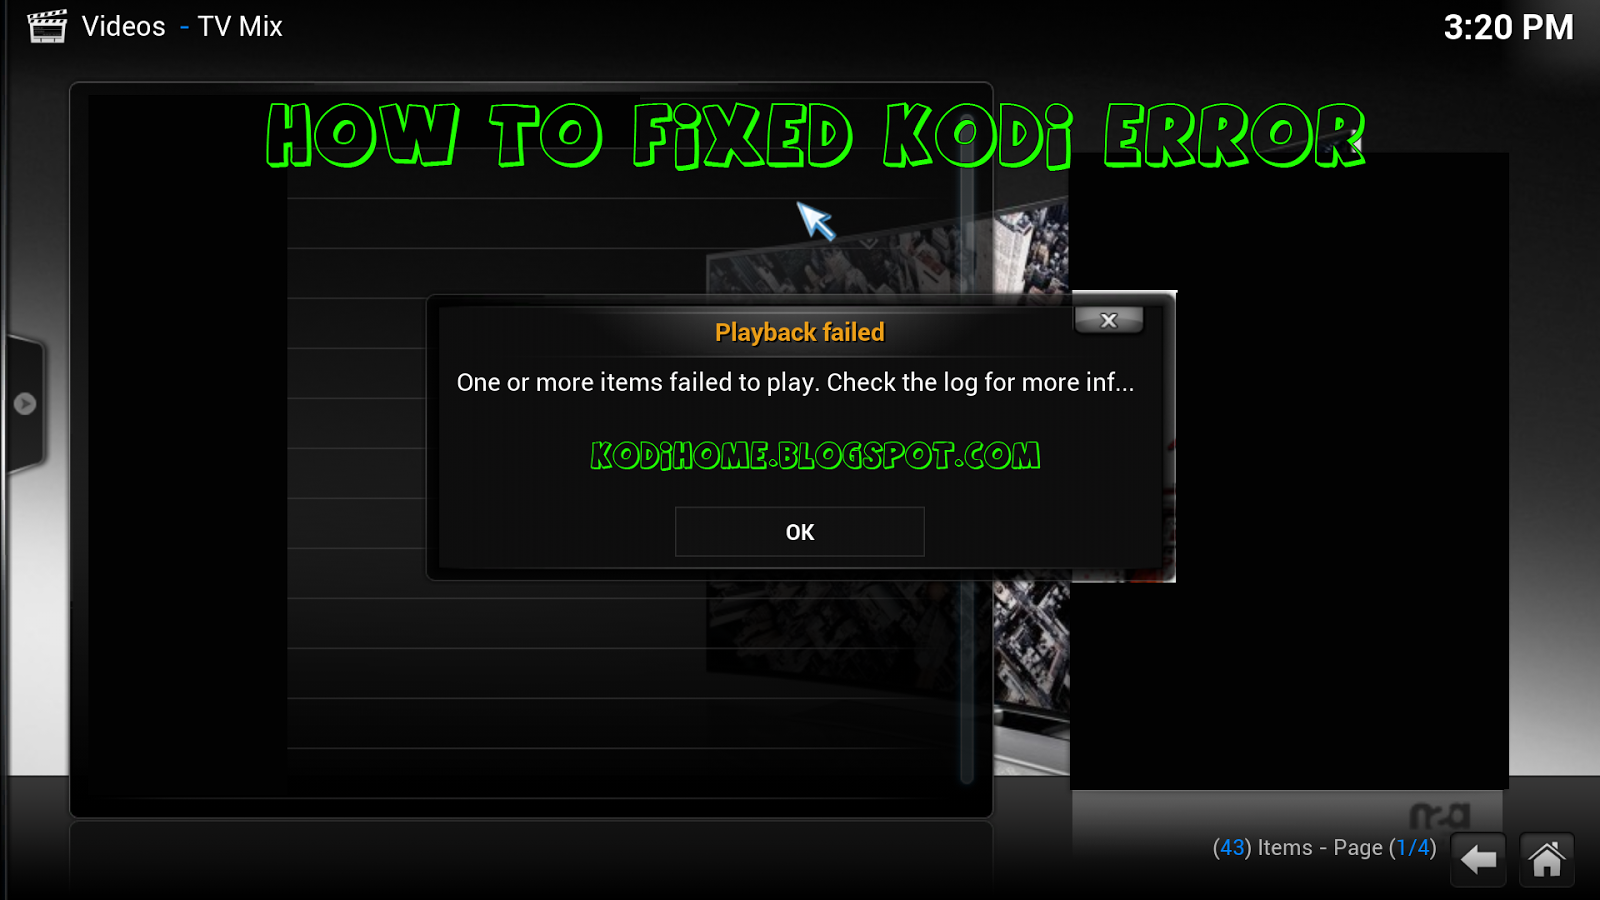 How To Solved Kodi Error: One or more items failed to play